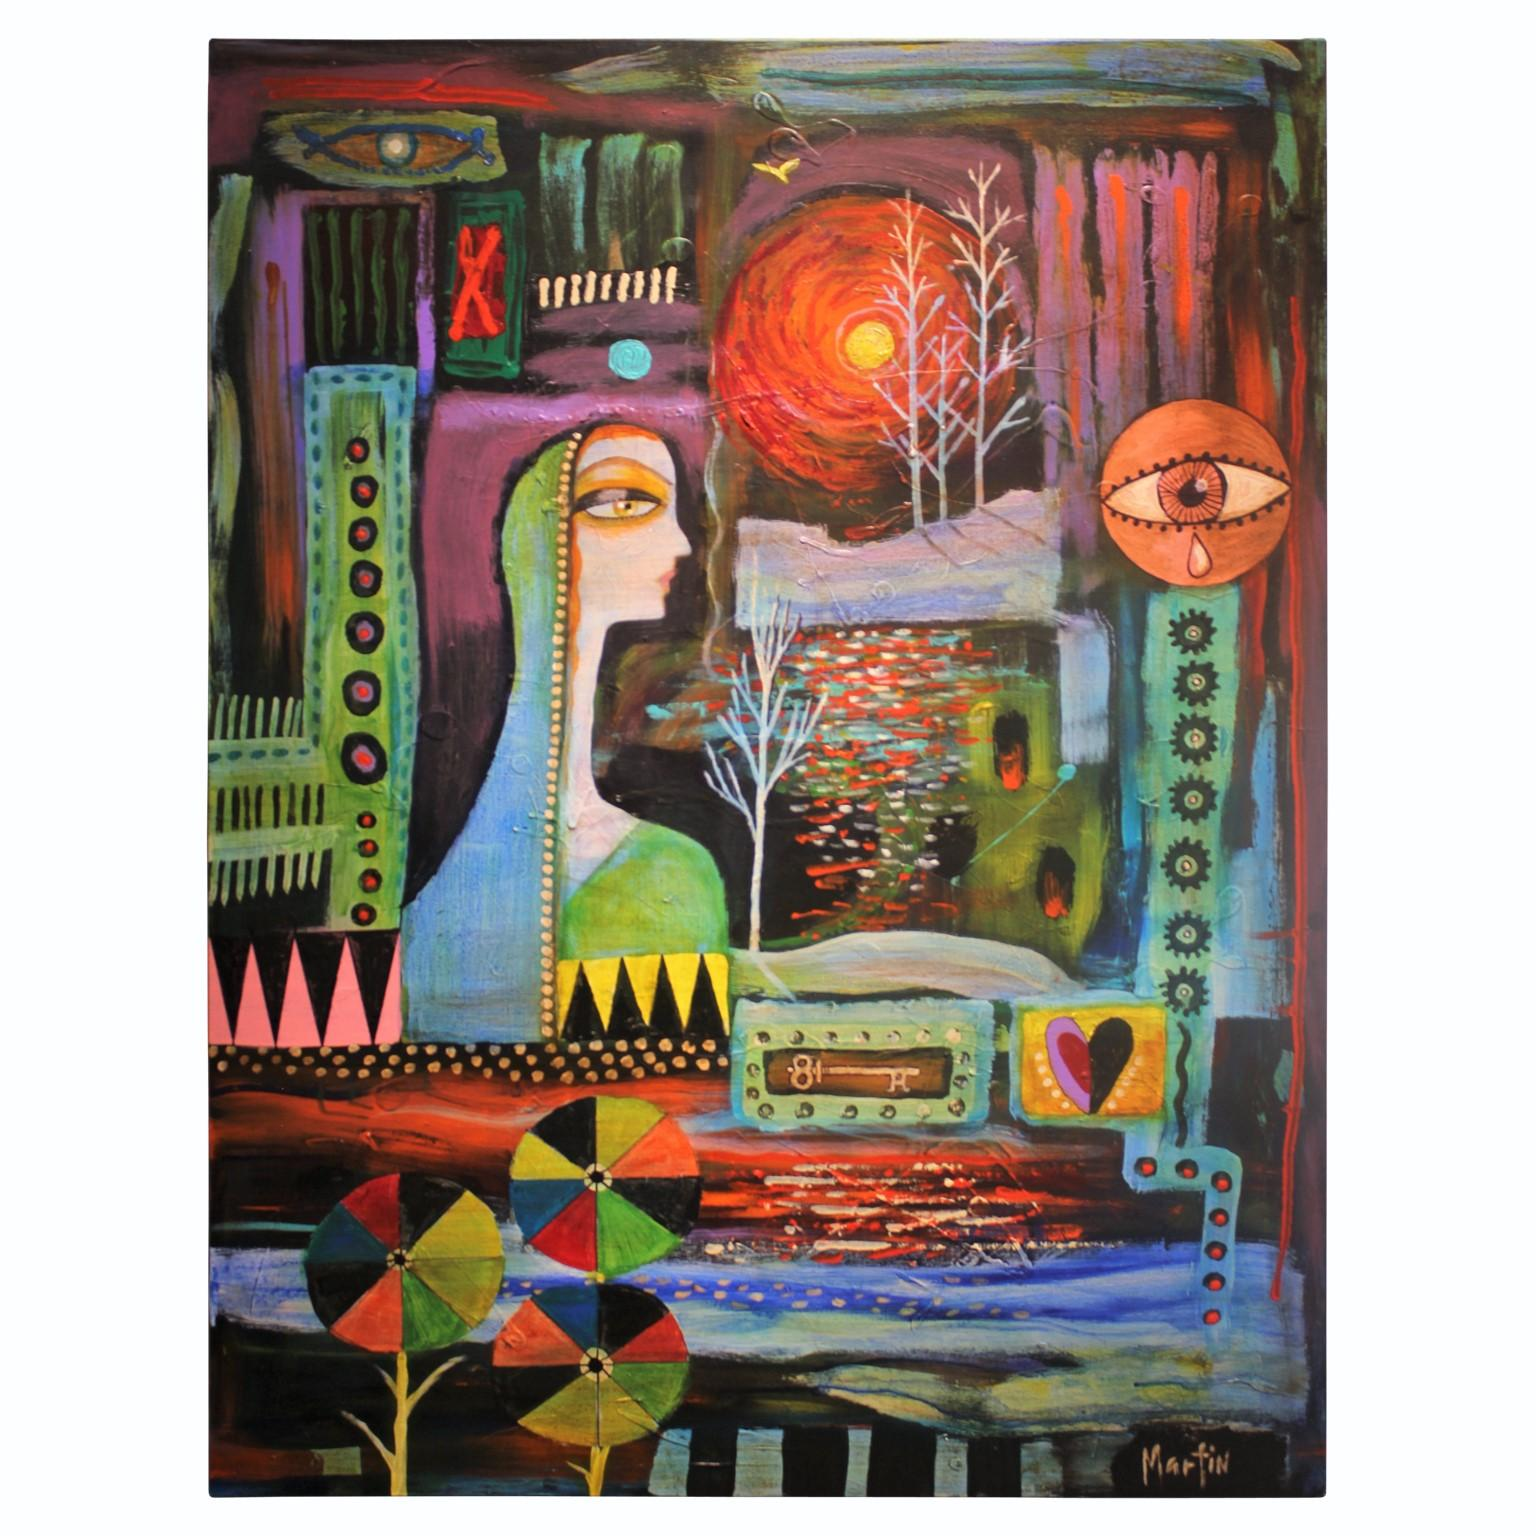 Abstract Surrealist Painting with a Female Figure